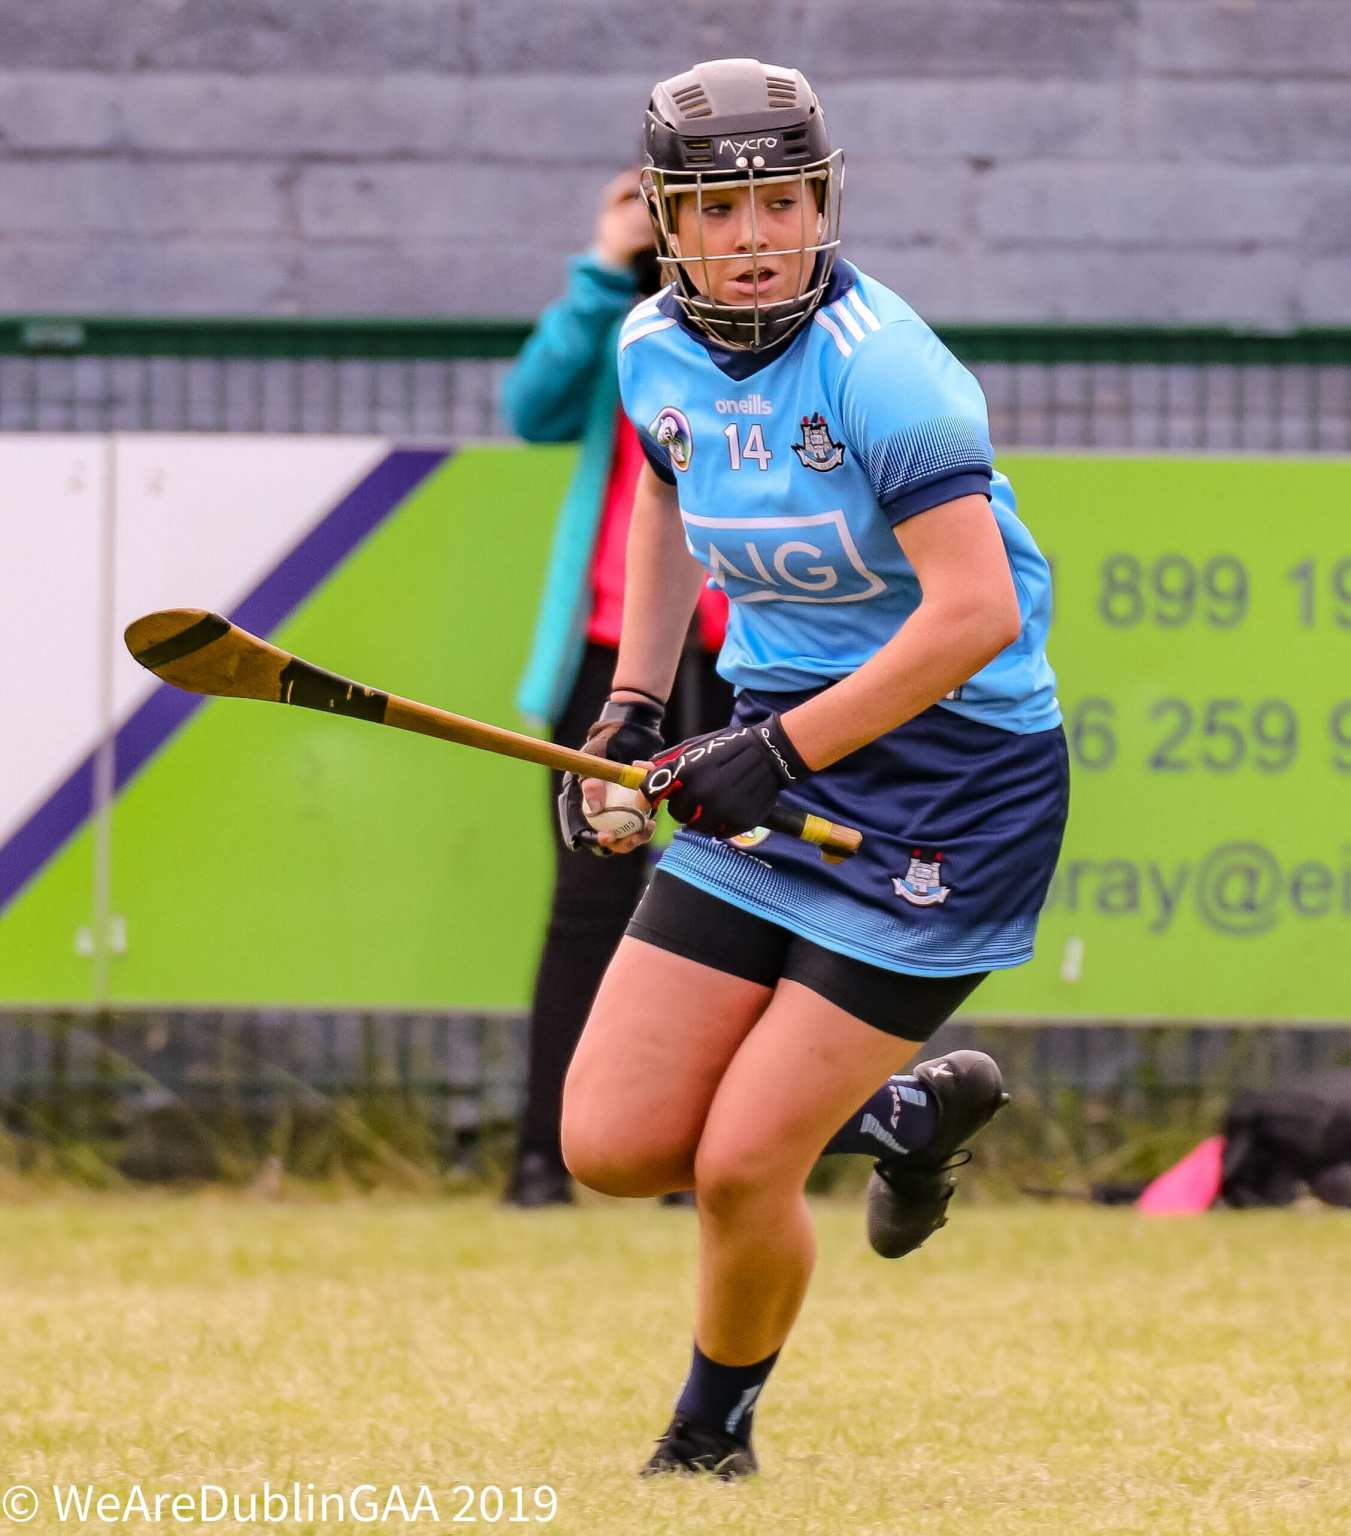 Dublin Senior Camogie Player Kerrie Finnegan who the Dubs will look to for the vital scores in their must win game against Tipperary